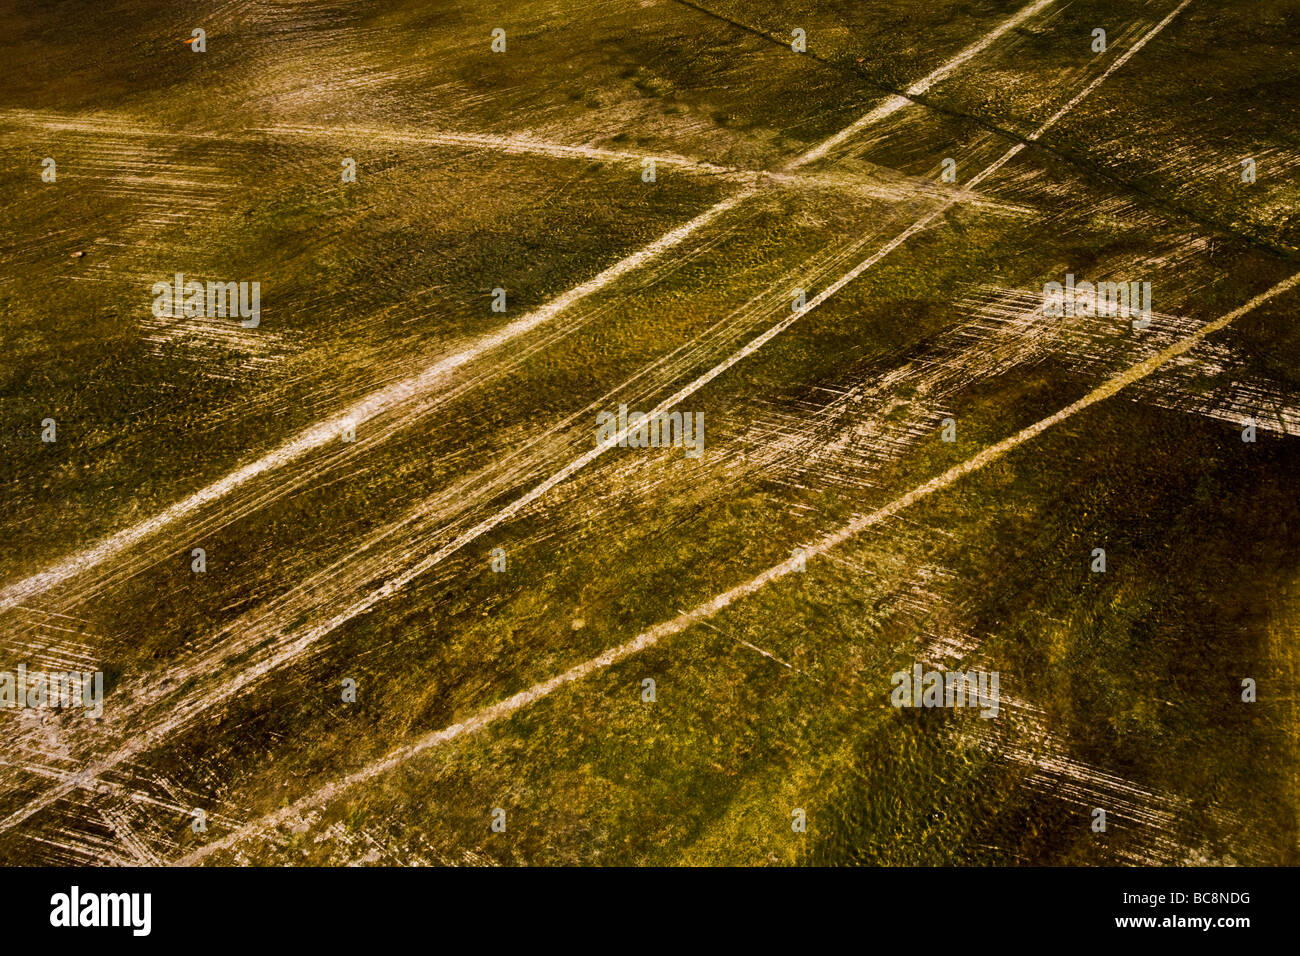 Tire tracks in the Los Angeles River Los Angeles County California United States of America - Stock Image